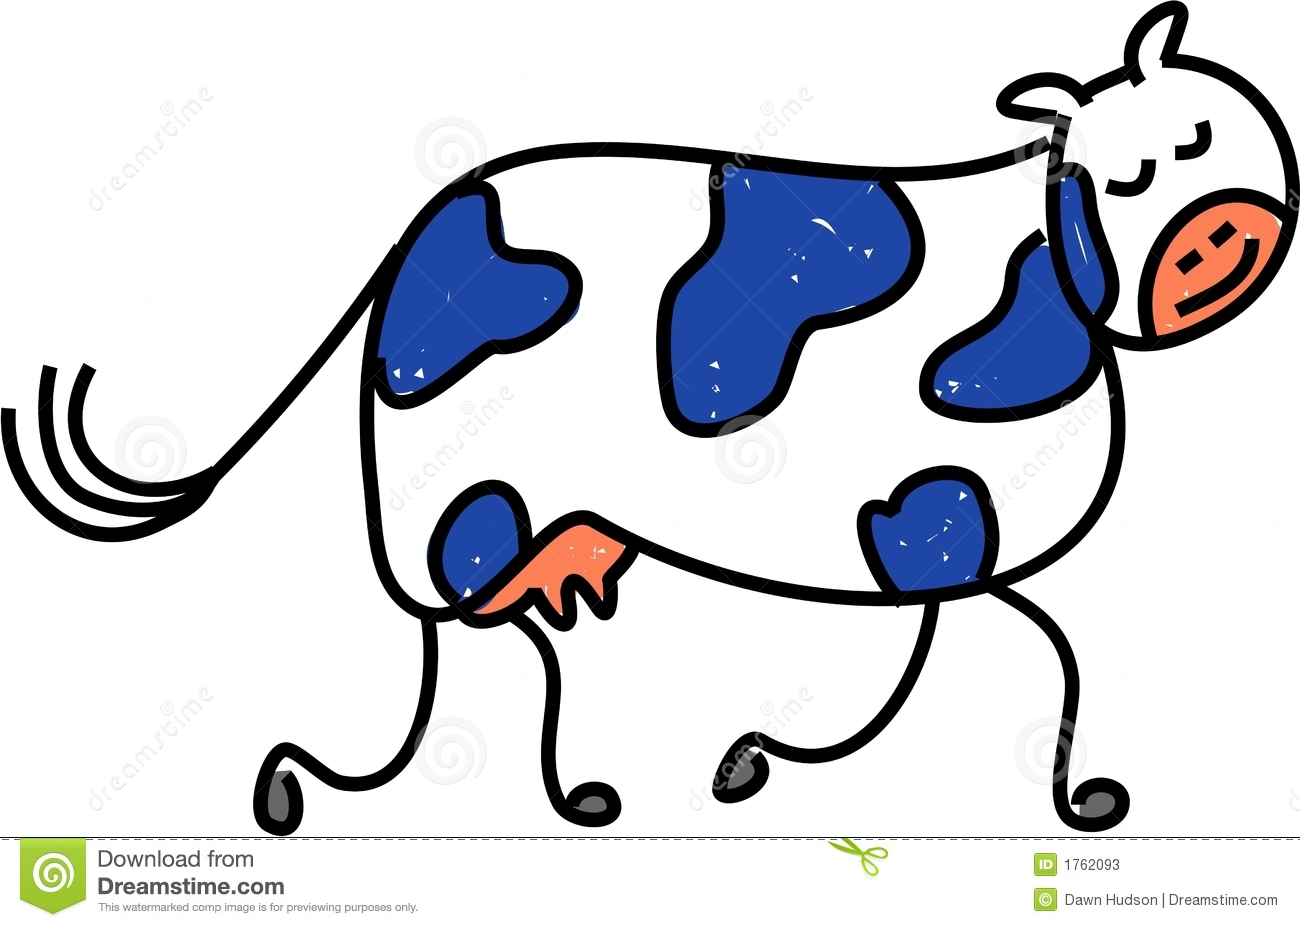 cow clipart simple - photo #24